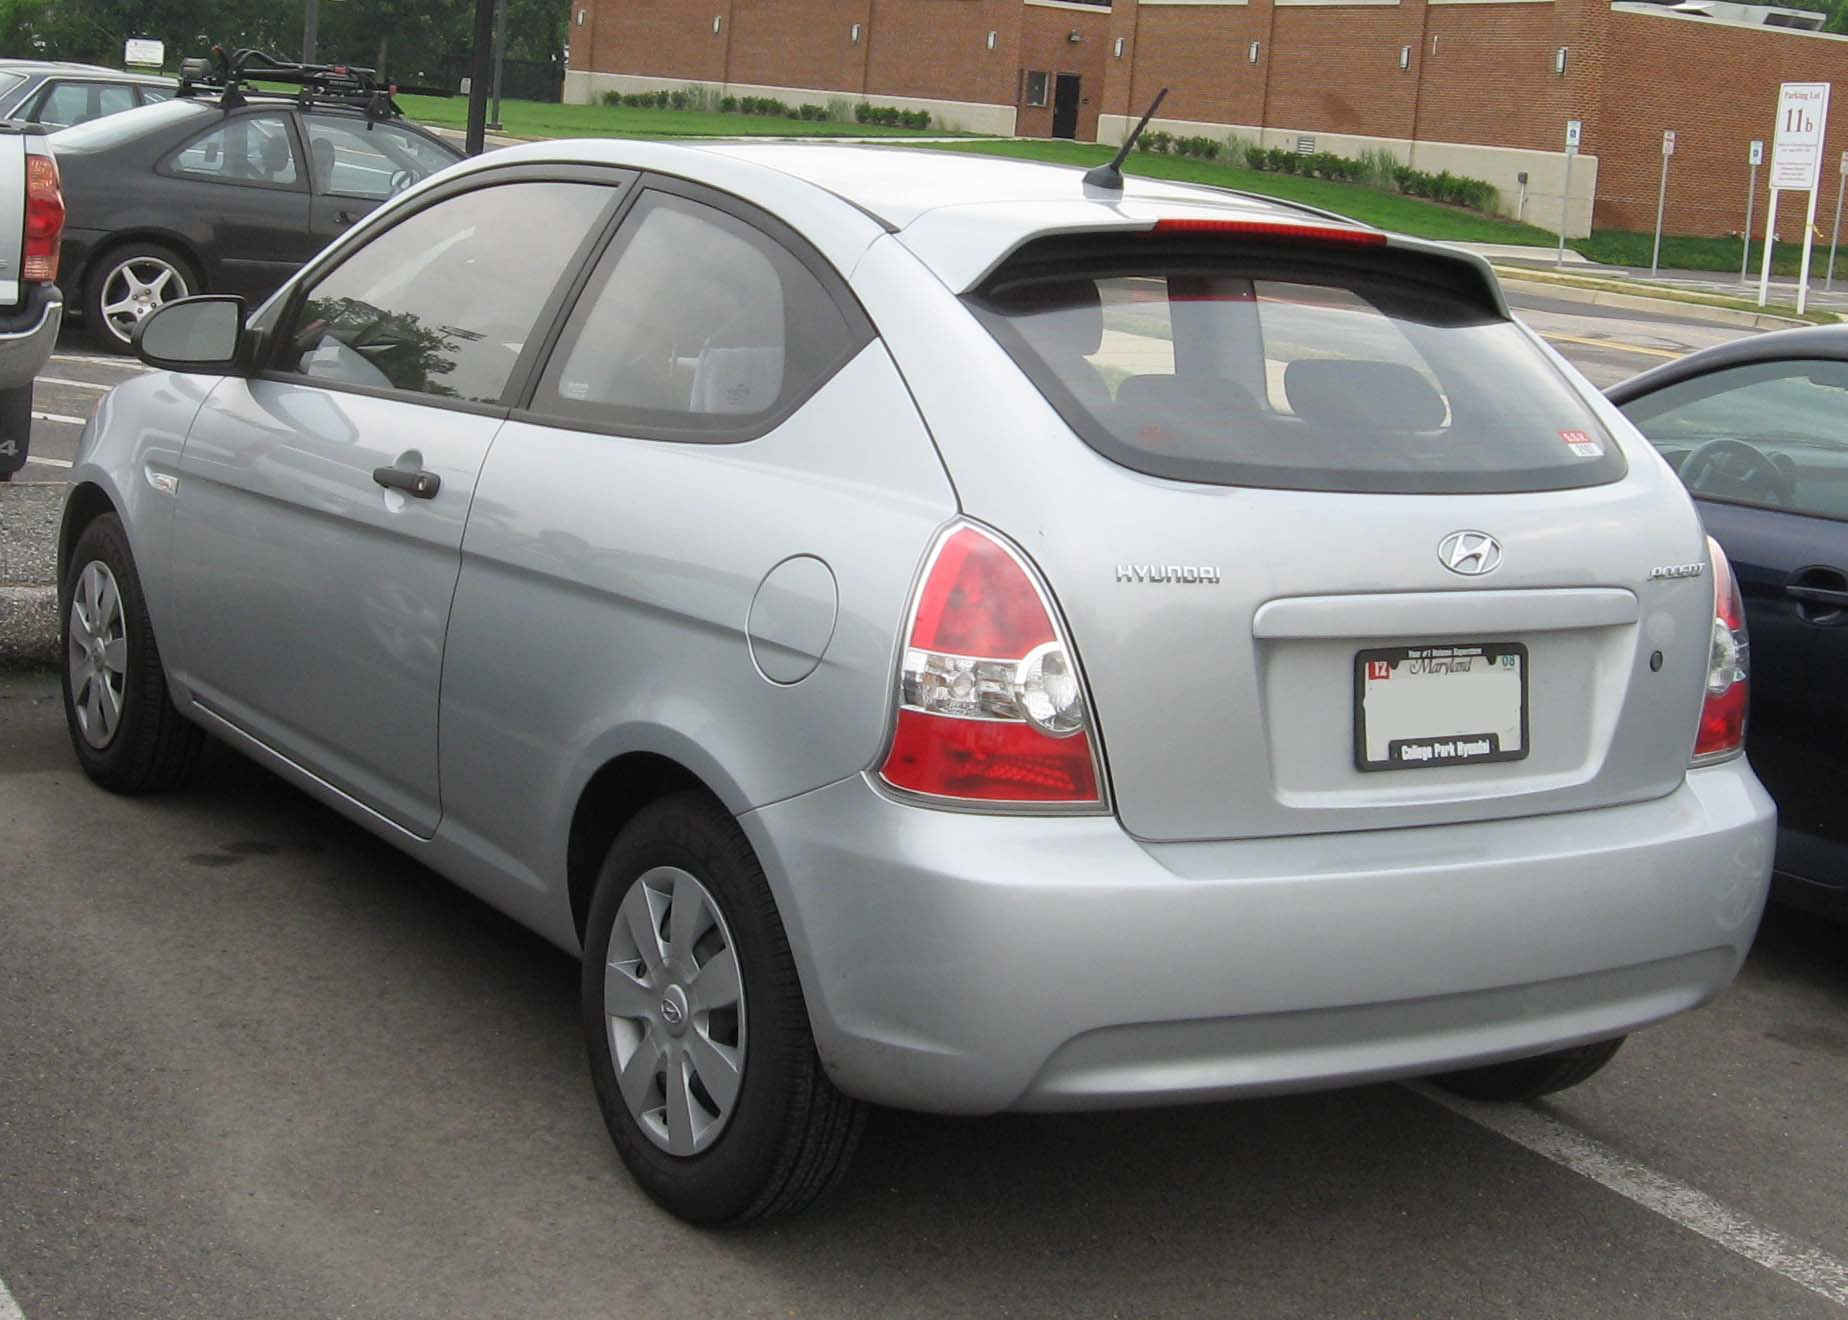 Hyundai Accent Hatchback >> File:Hyundai-Accent-GS-rear.jpg - Wikimedia Commons